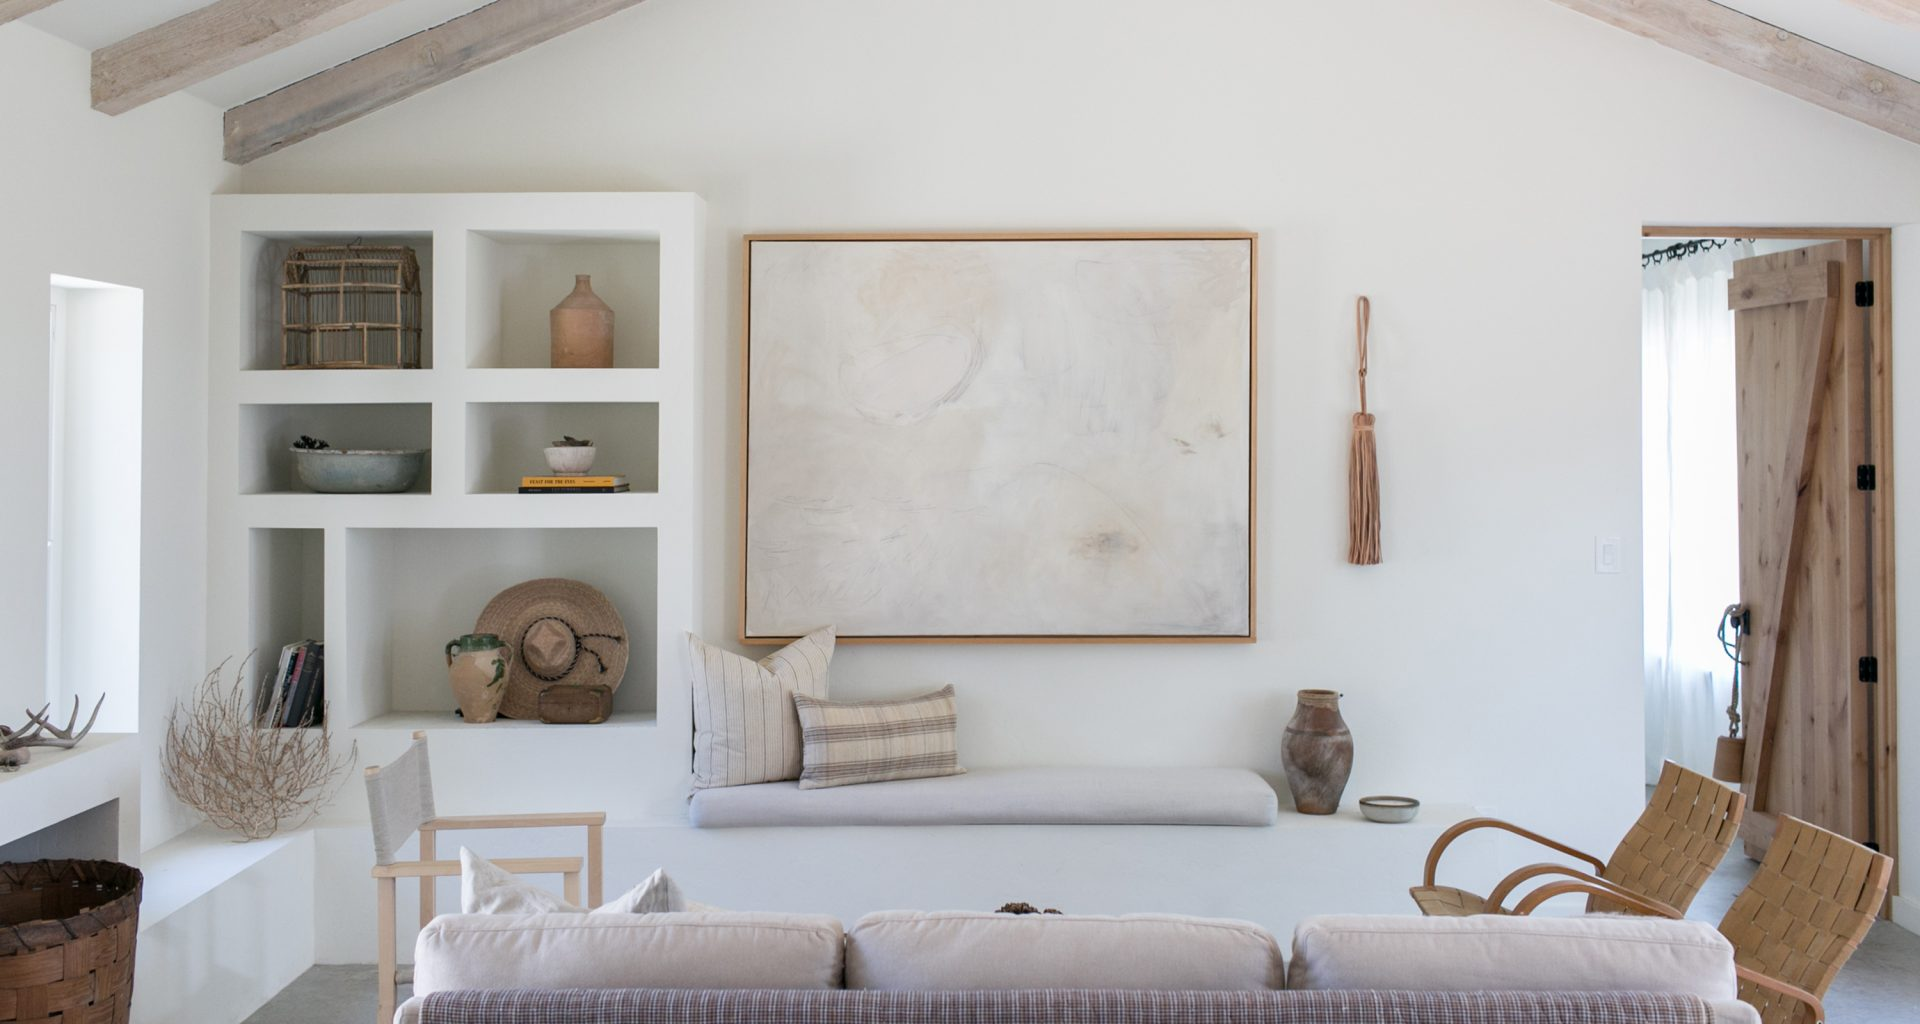 Small Pieces, Big Impact: 3 Interior Designers on the Décor That Transforms a Space